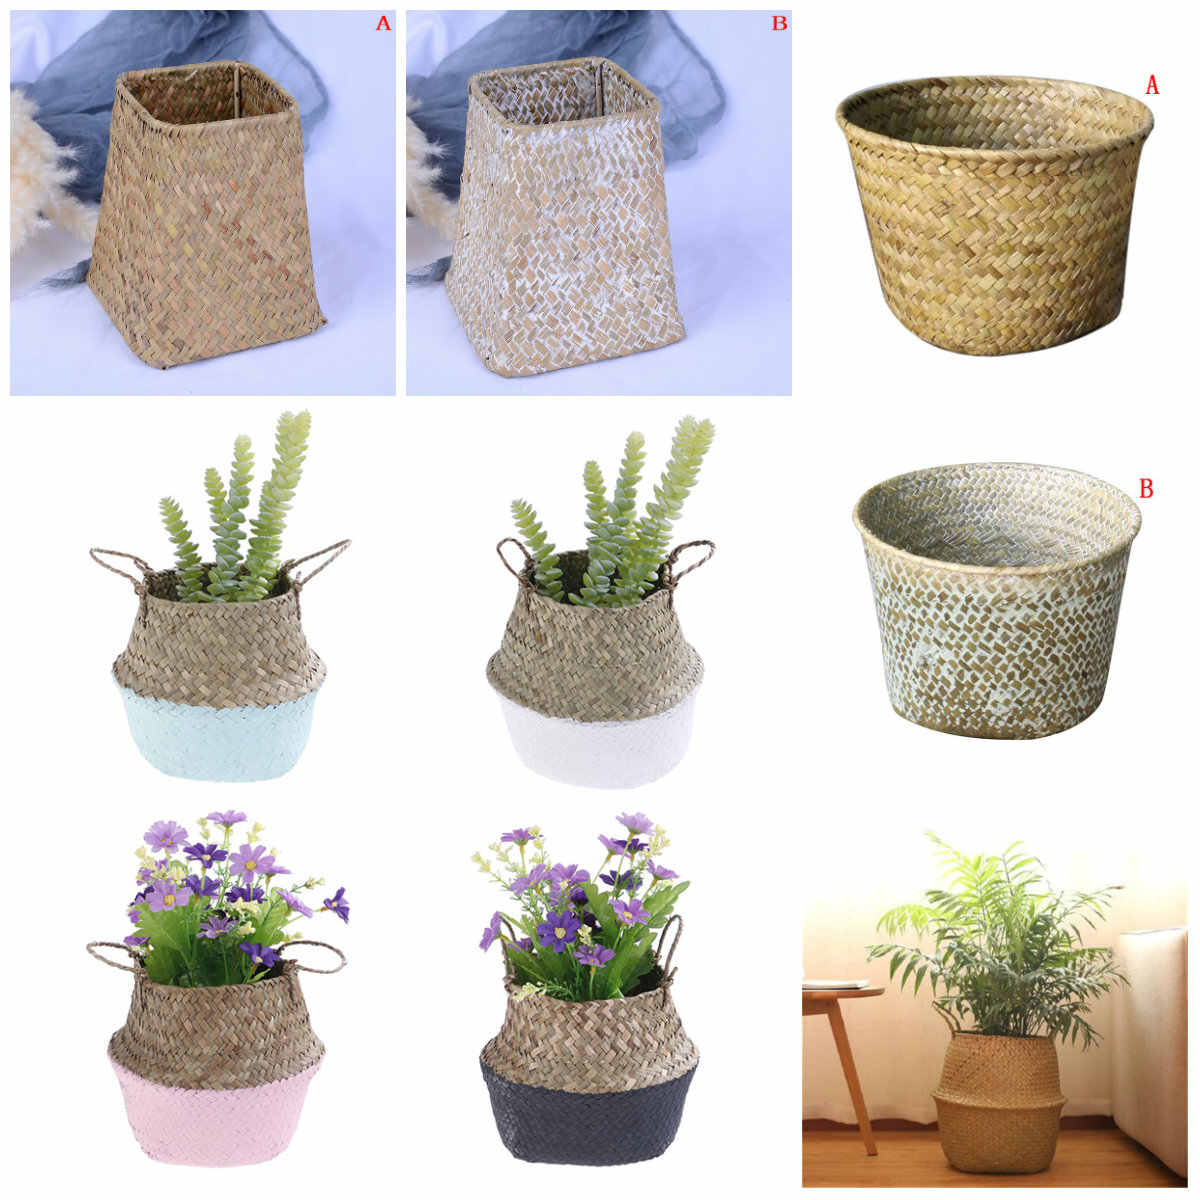 Storage Baskets Foldable Laundry Straw Patchwork Wicker Rattan Seagrass Belly Garden Flower Pot Planter Basket Handmade Bamboo